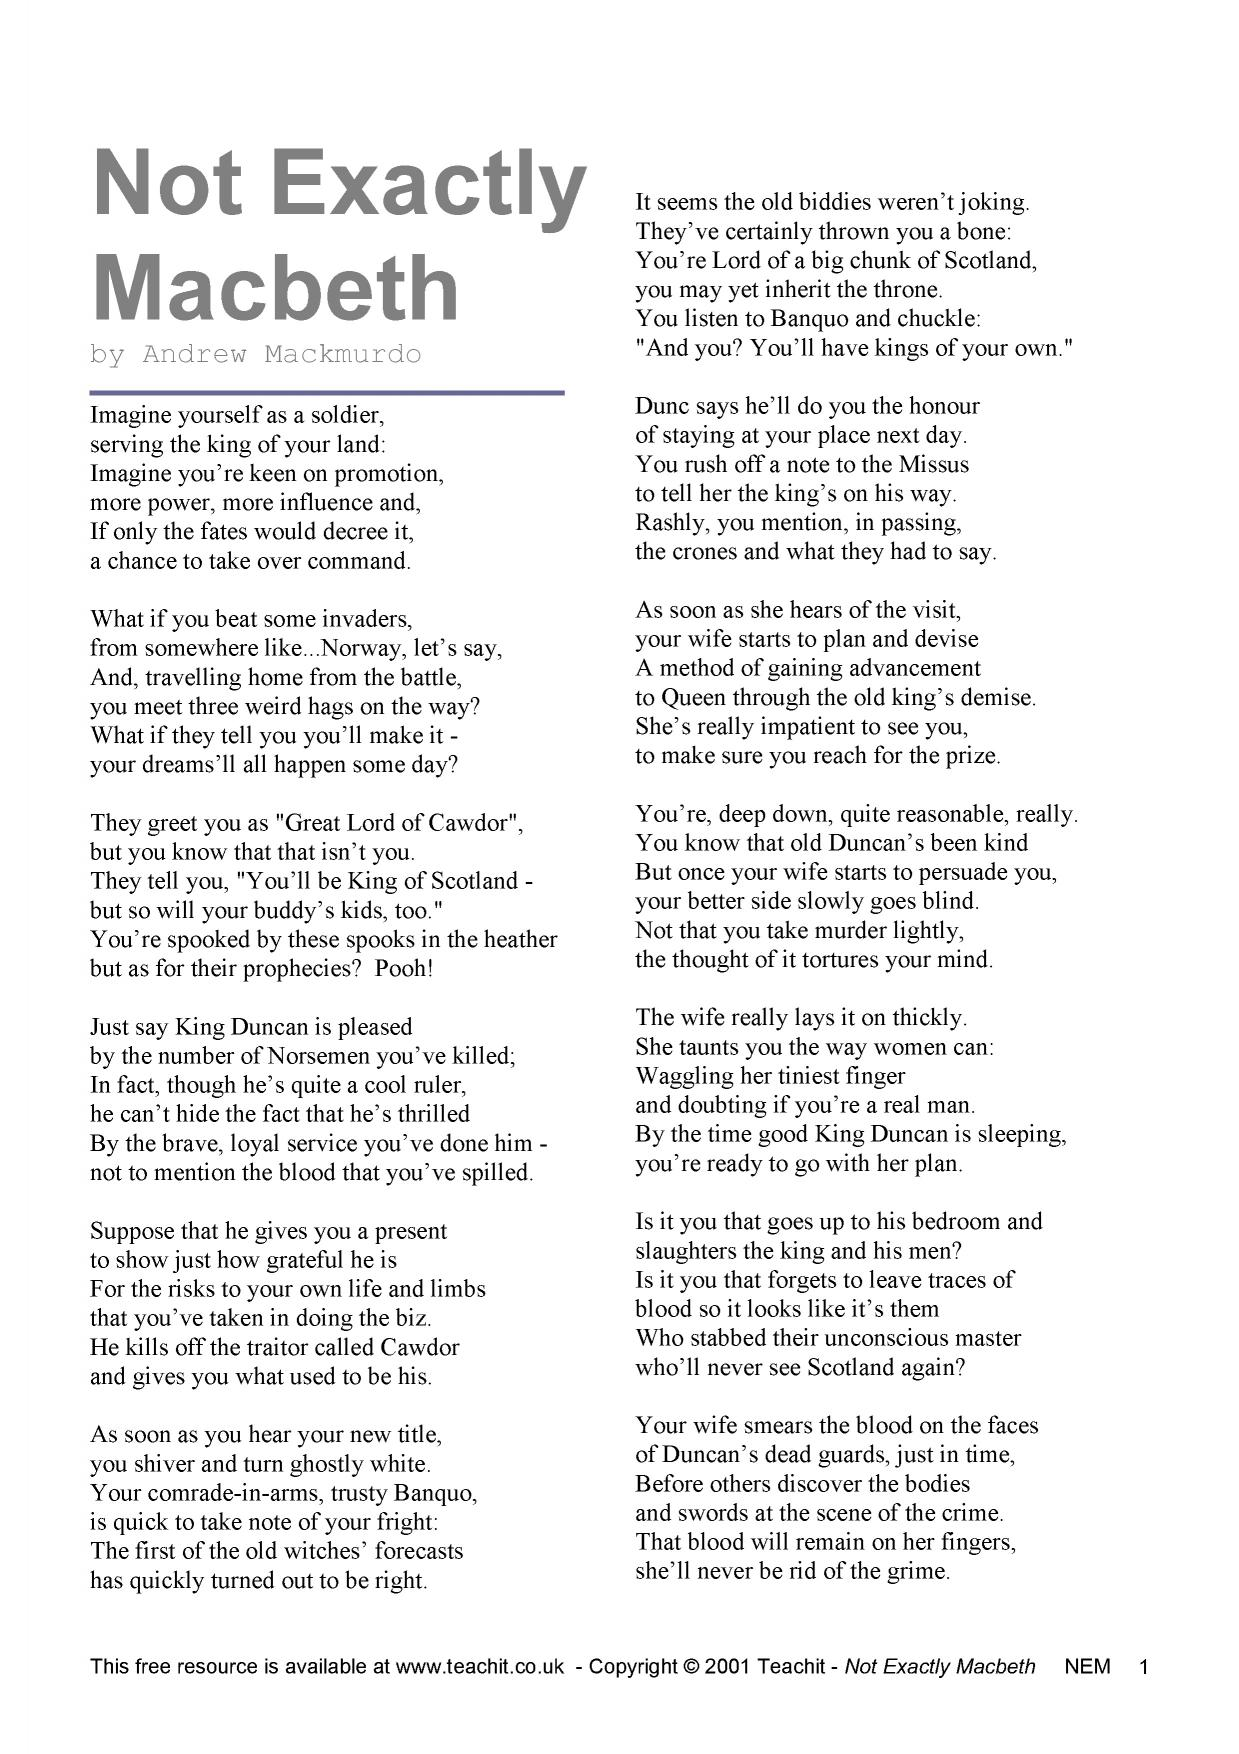 Gcse macbeth essay questions